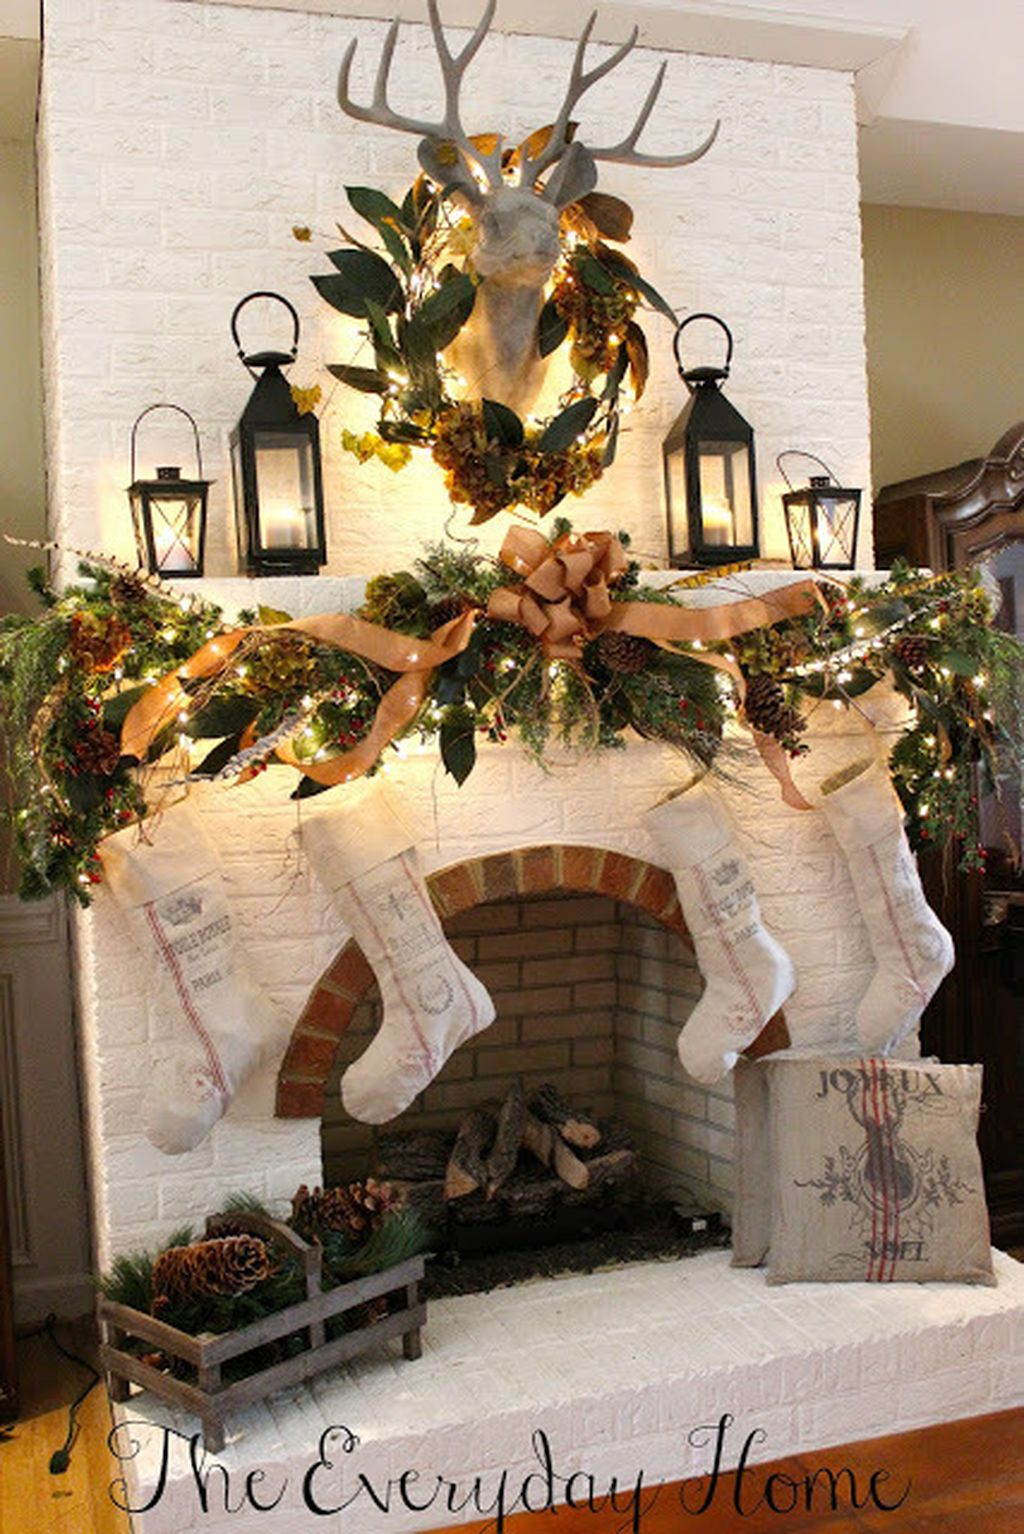 Inspiring Rustic Christmas Fireplace Ideas To Makes Your Home Warmer 07